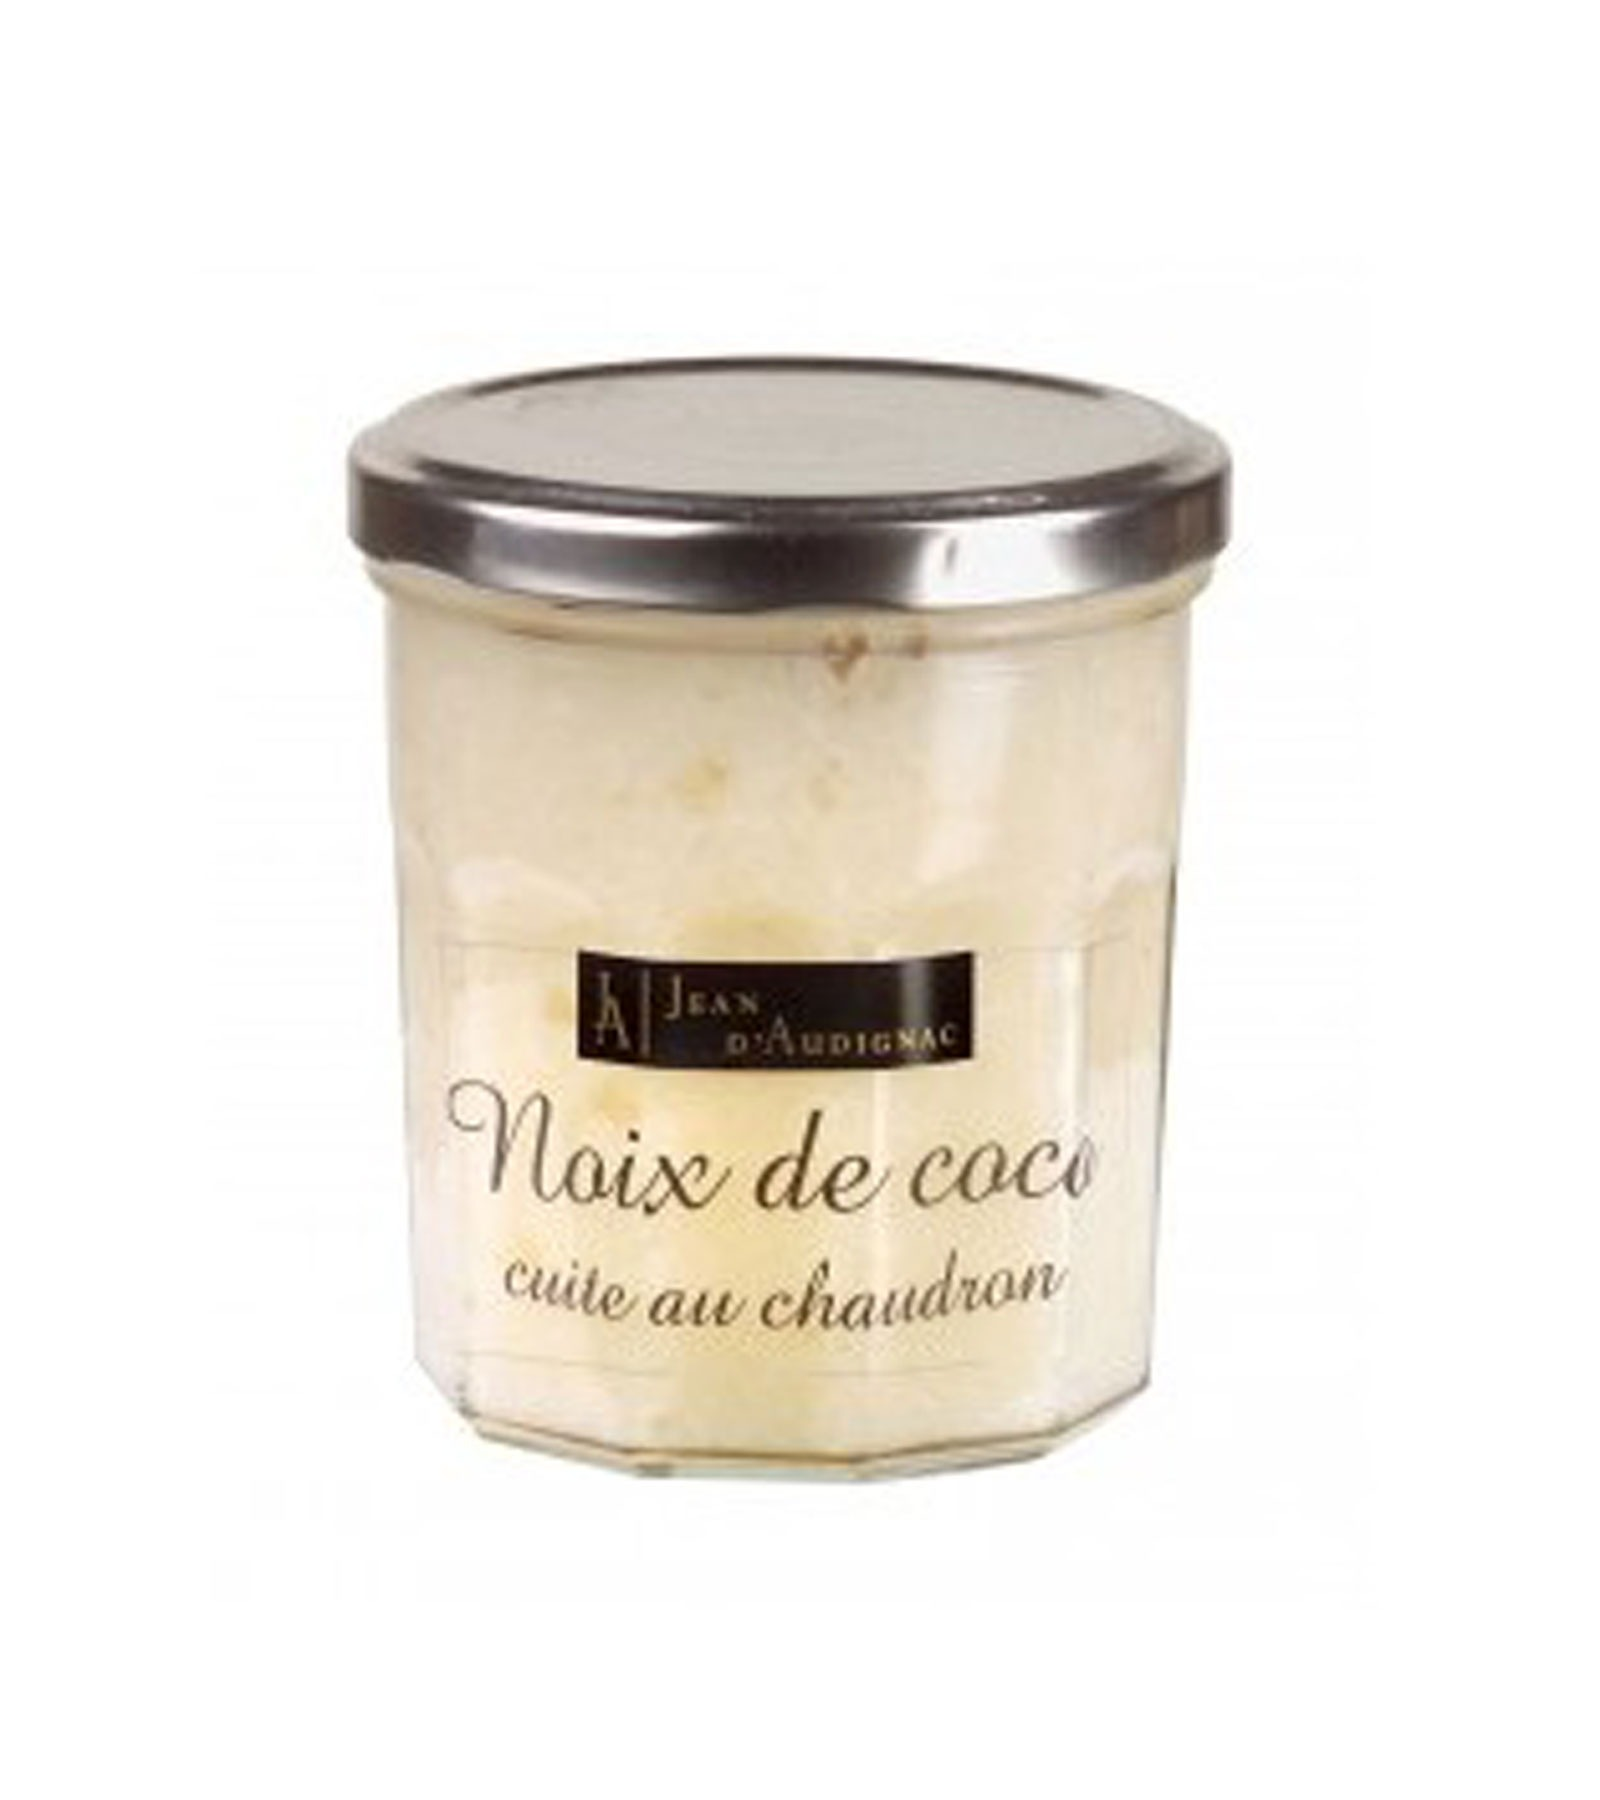 confiture jean d'audignac